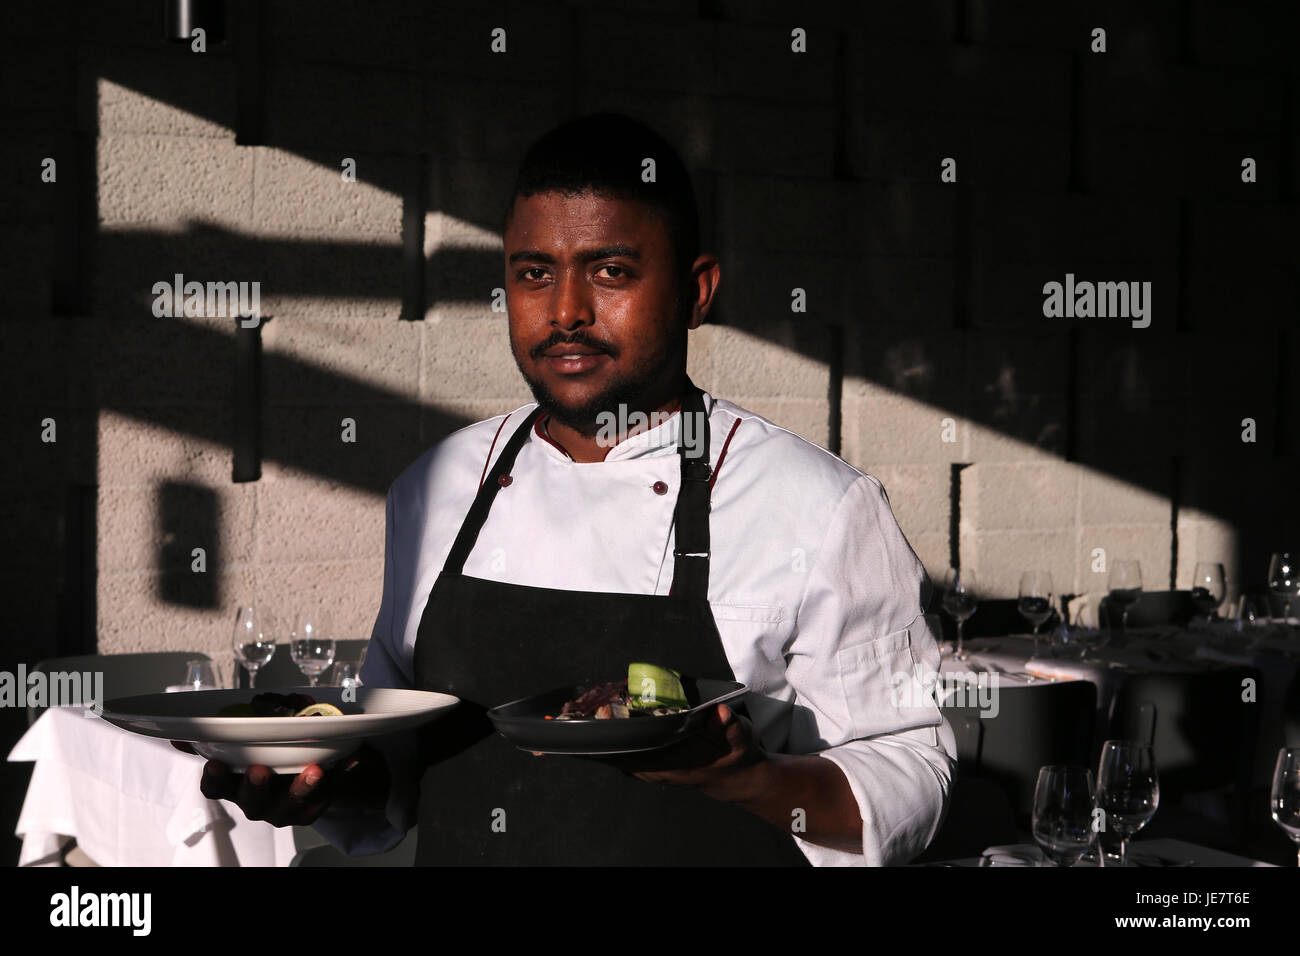 Athens, Greece. 22nd June, 2017. 25-year-old refugee chef Hassan from Somalia, works in 'Vassilenas', a - Stock Image